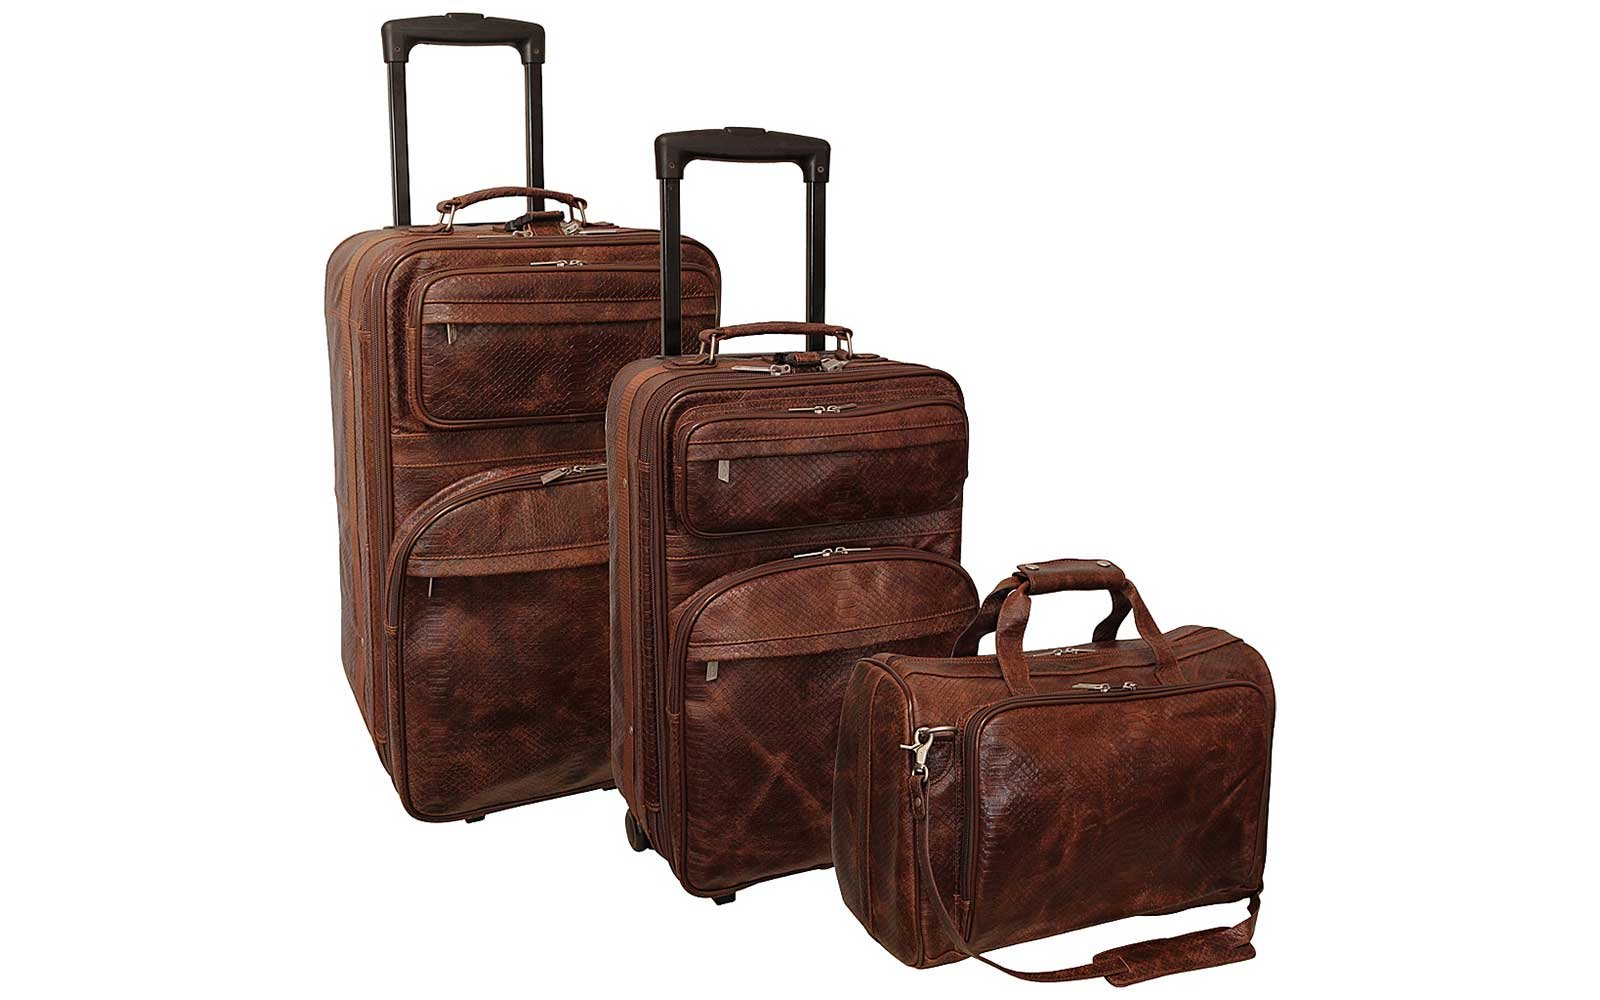 Amerileather Brown Leather 3-piece luggage set